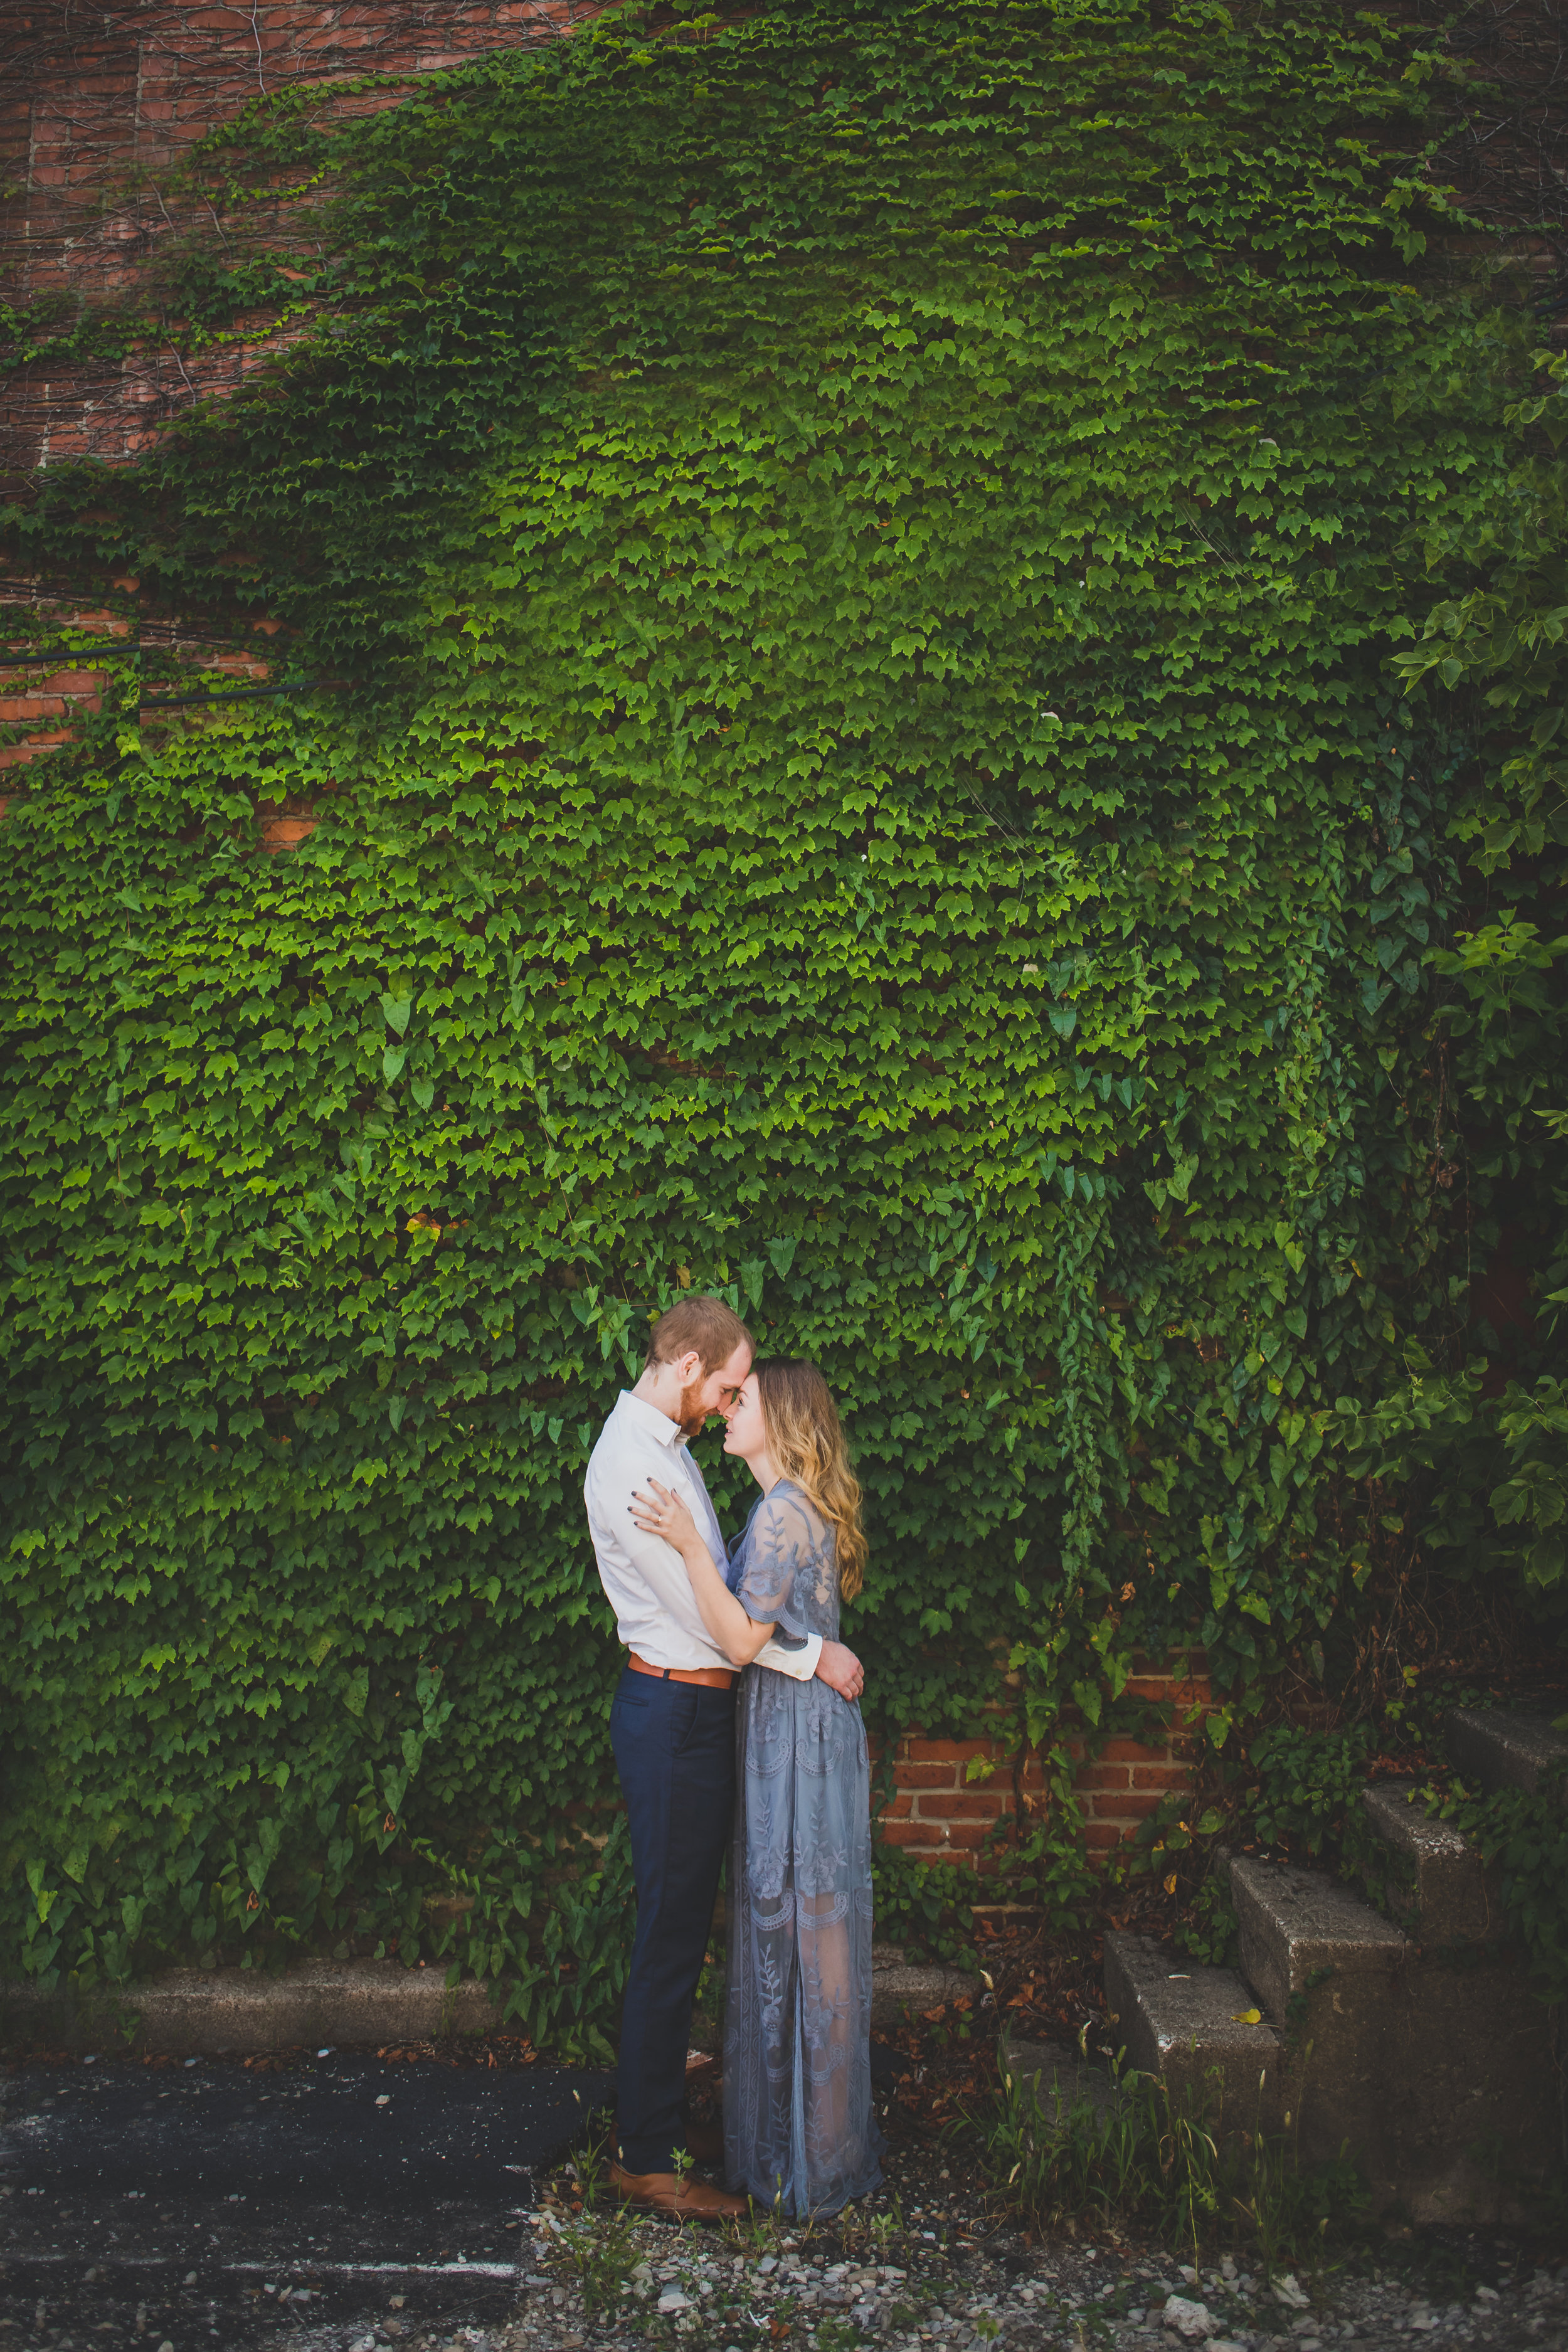 Michelle Carter Photography-Downtown Medina Engagement Session-Brianna and Josh-41.jpg